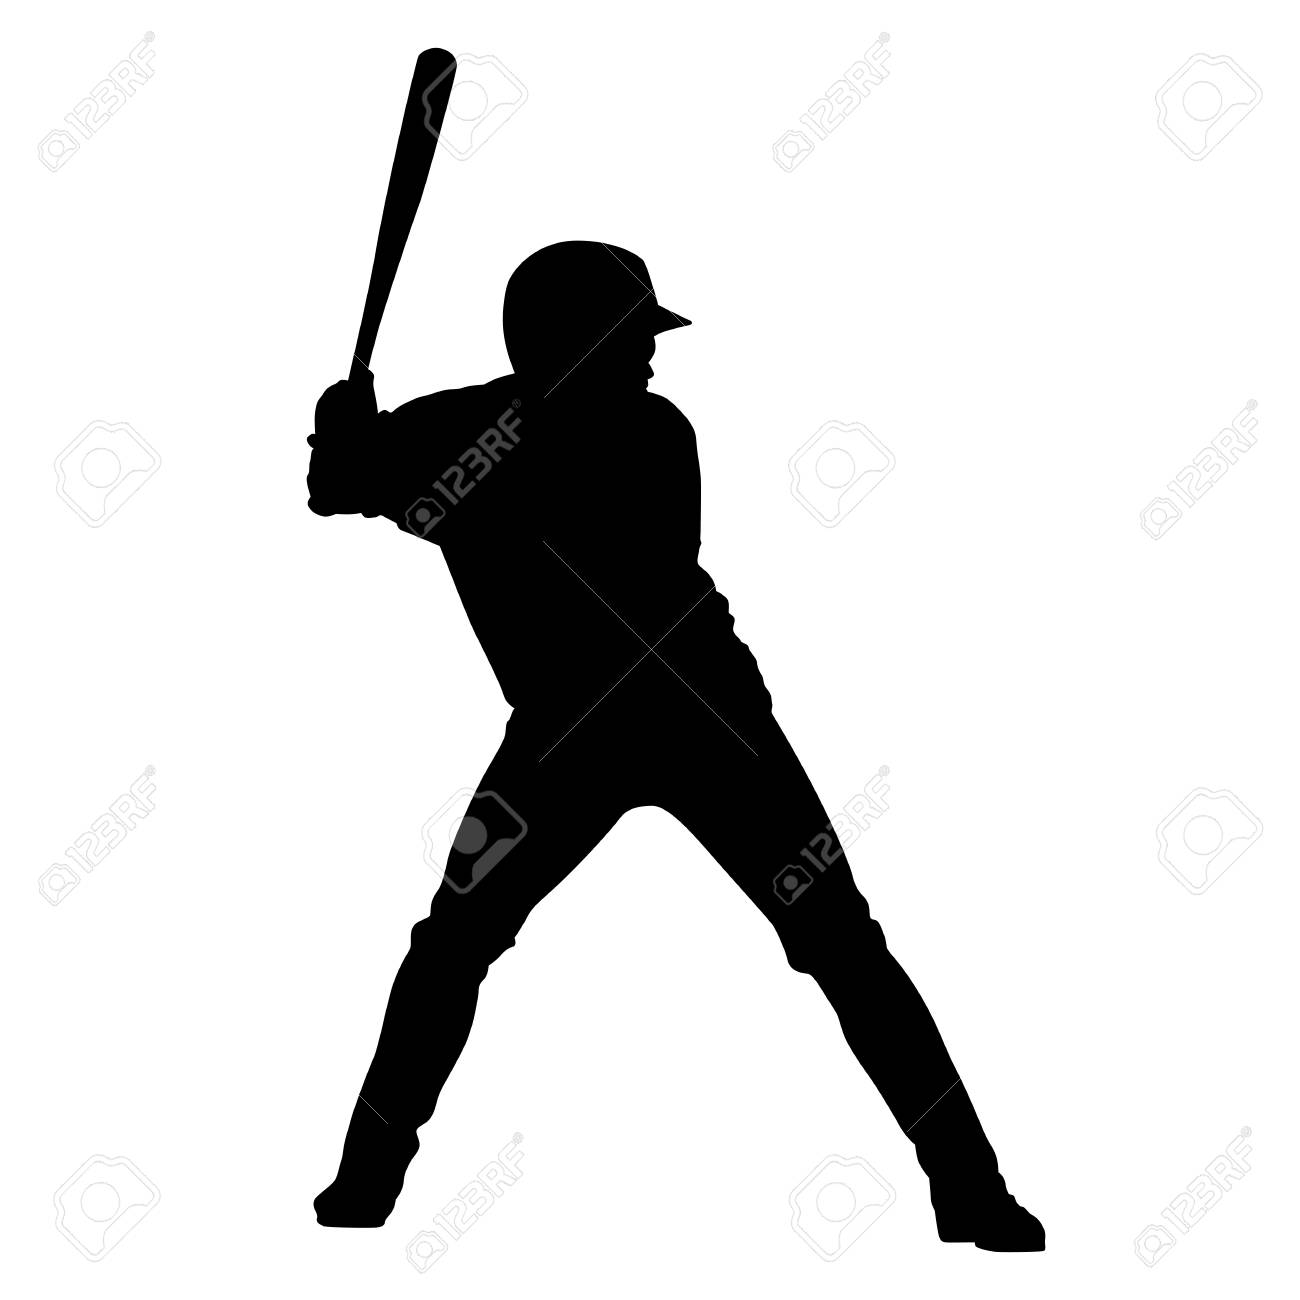 baseball player holding bat vector silhouette royalty free cliparts rh 123rf com Baseball Batter Silhouette Baseball Cap Vector